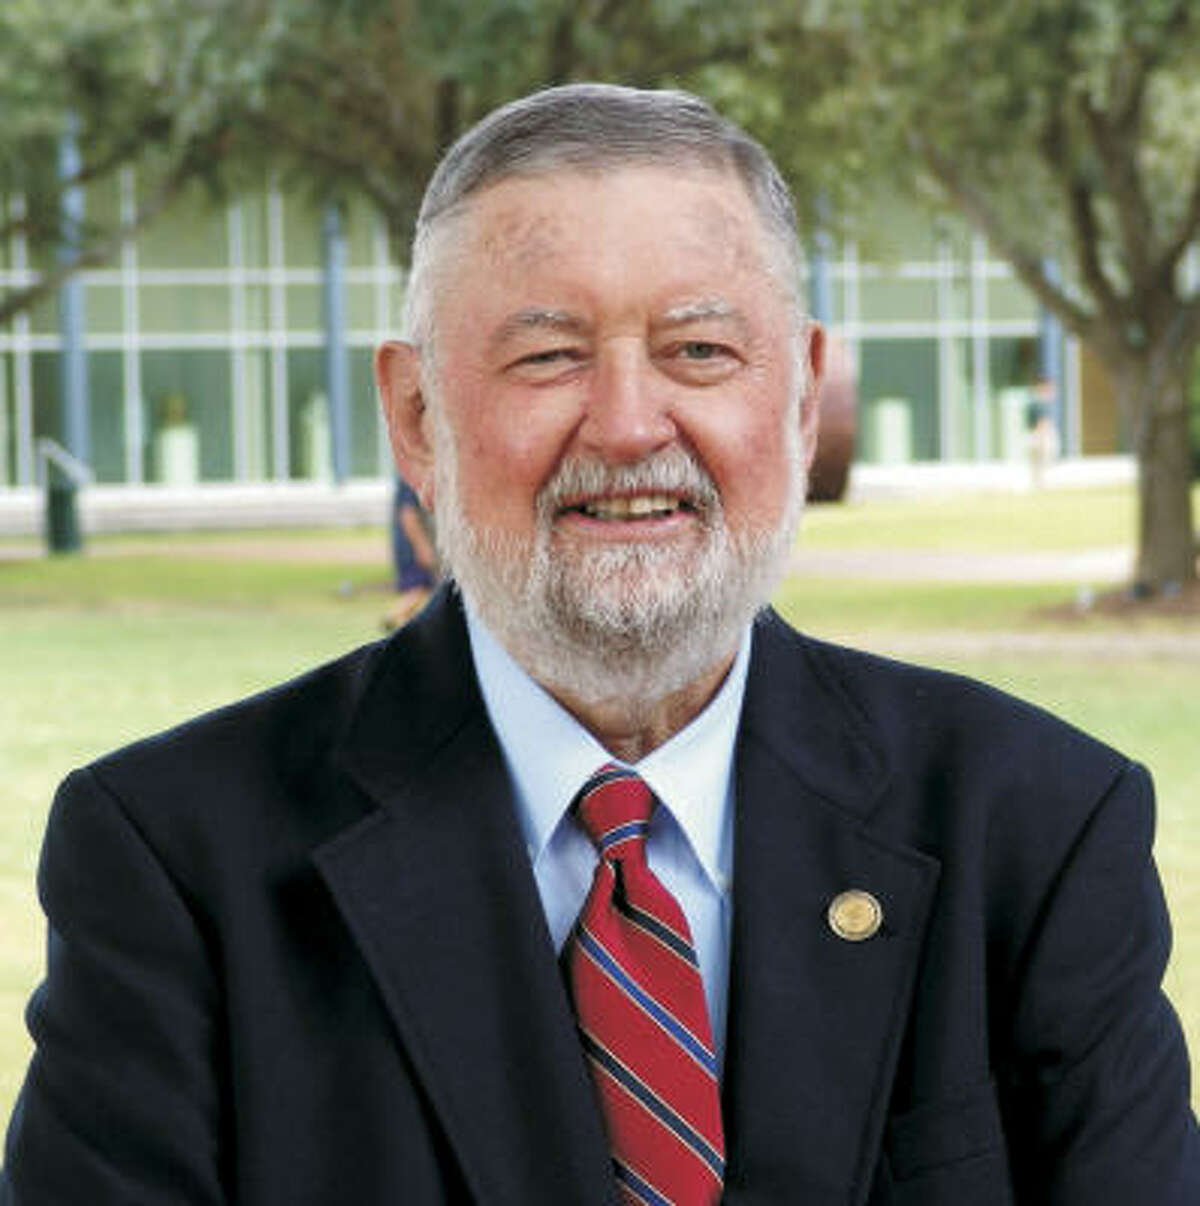 Richard Nevle started out as a history teacher at Strake Jesuit College Preparatory in 1967 and eventually became a principal.